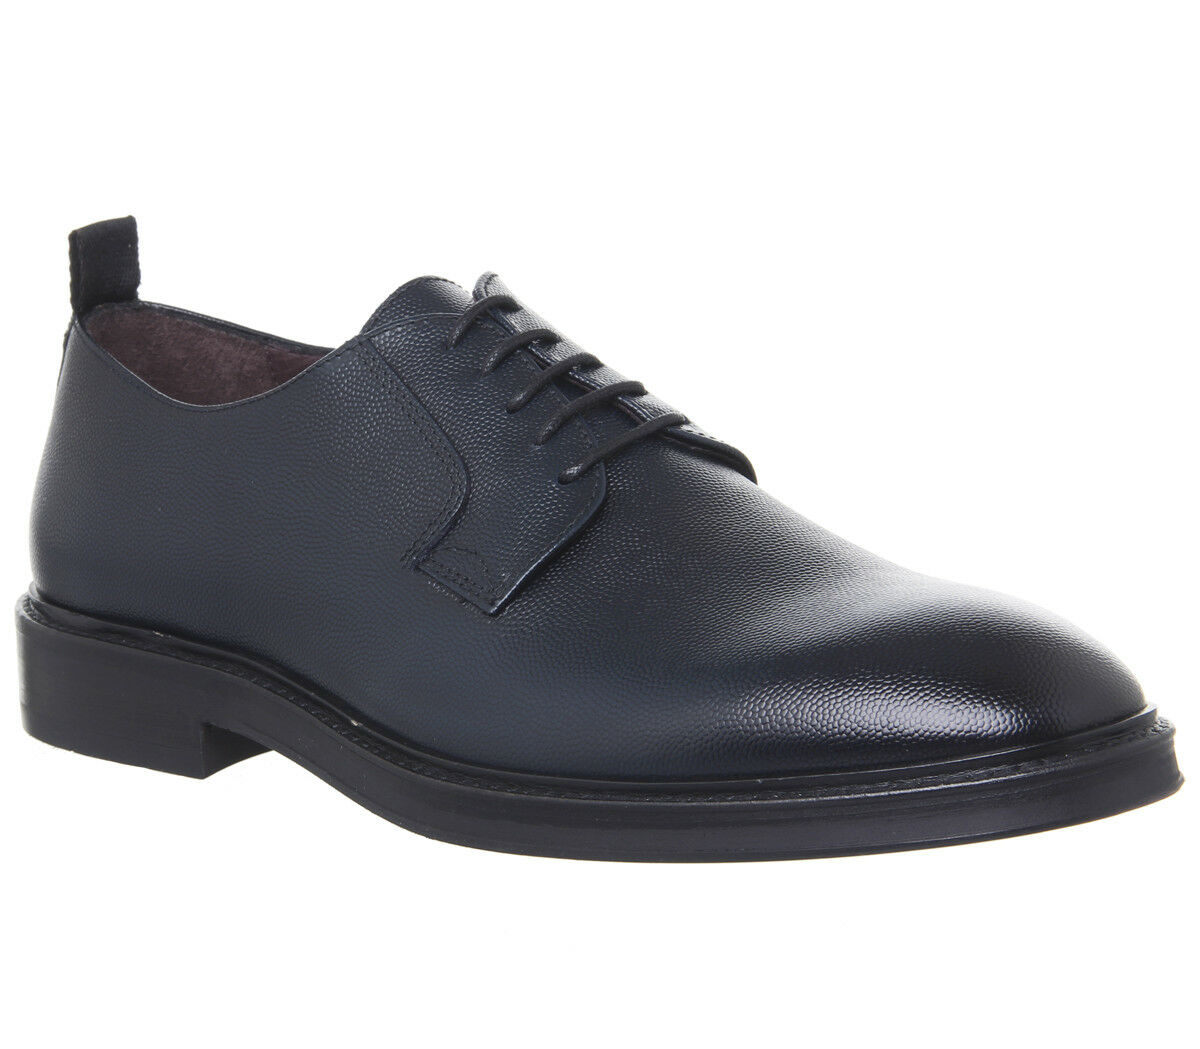 Mens Poste Idris Derby shoes Dark Navy Leather Formal shoes